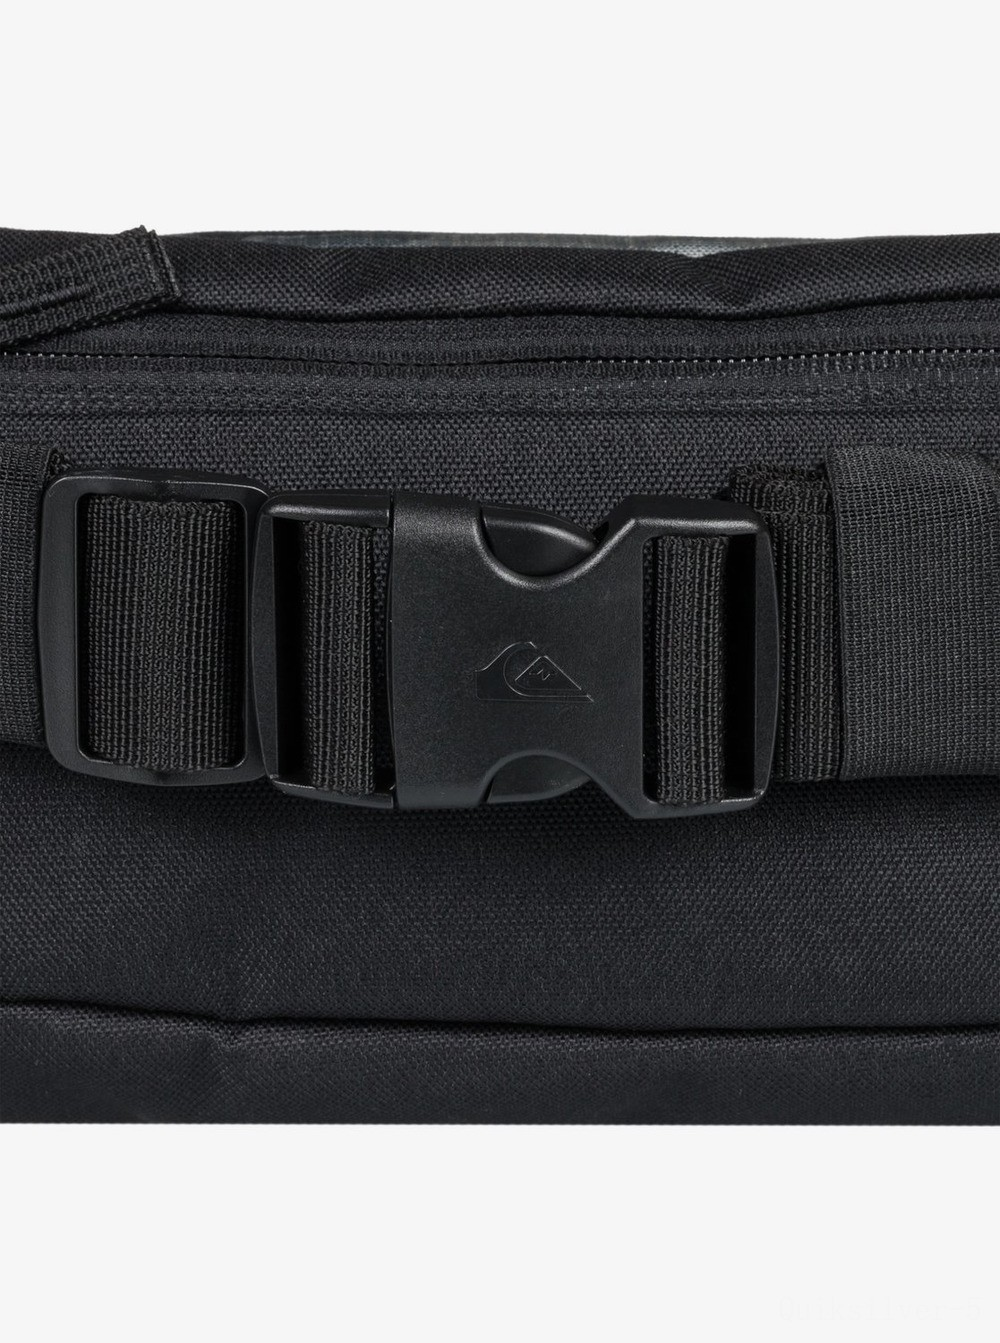 last chance jungler fanny pack - camo limited sale best price